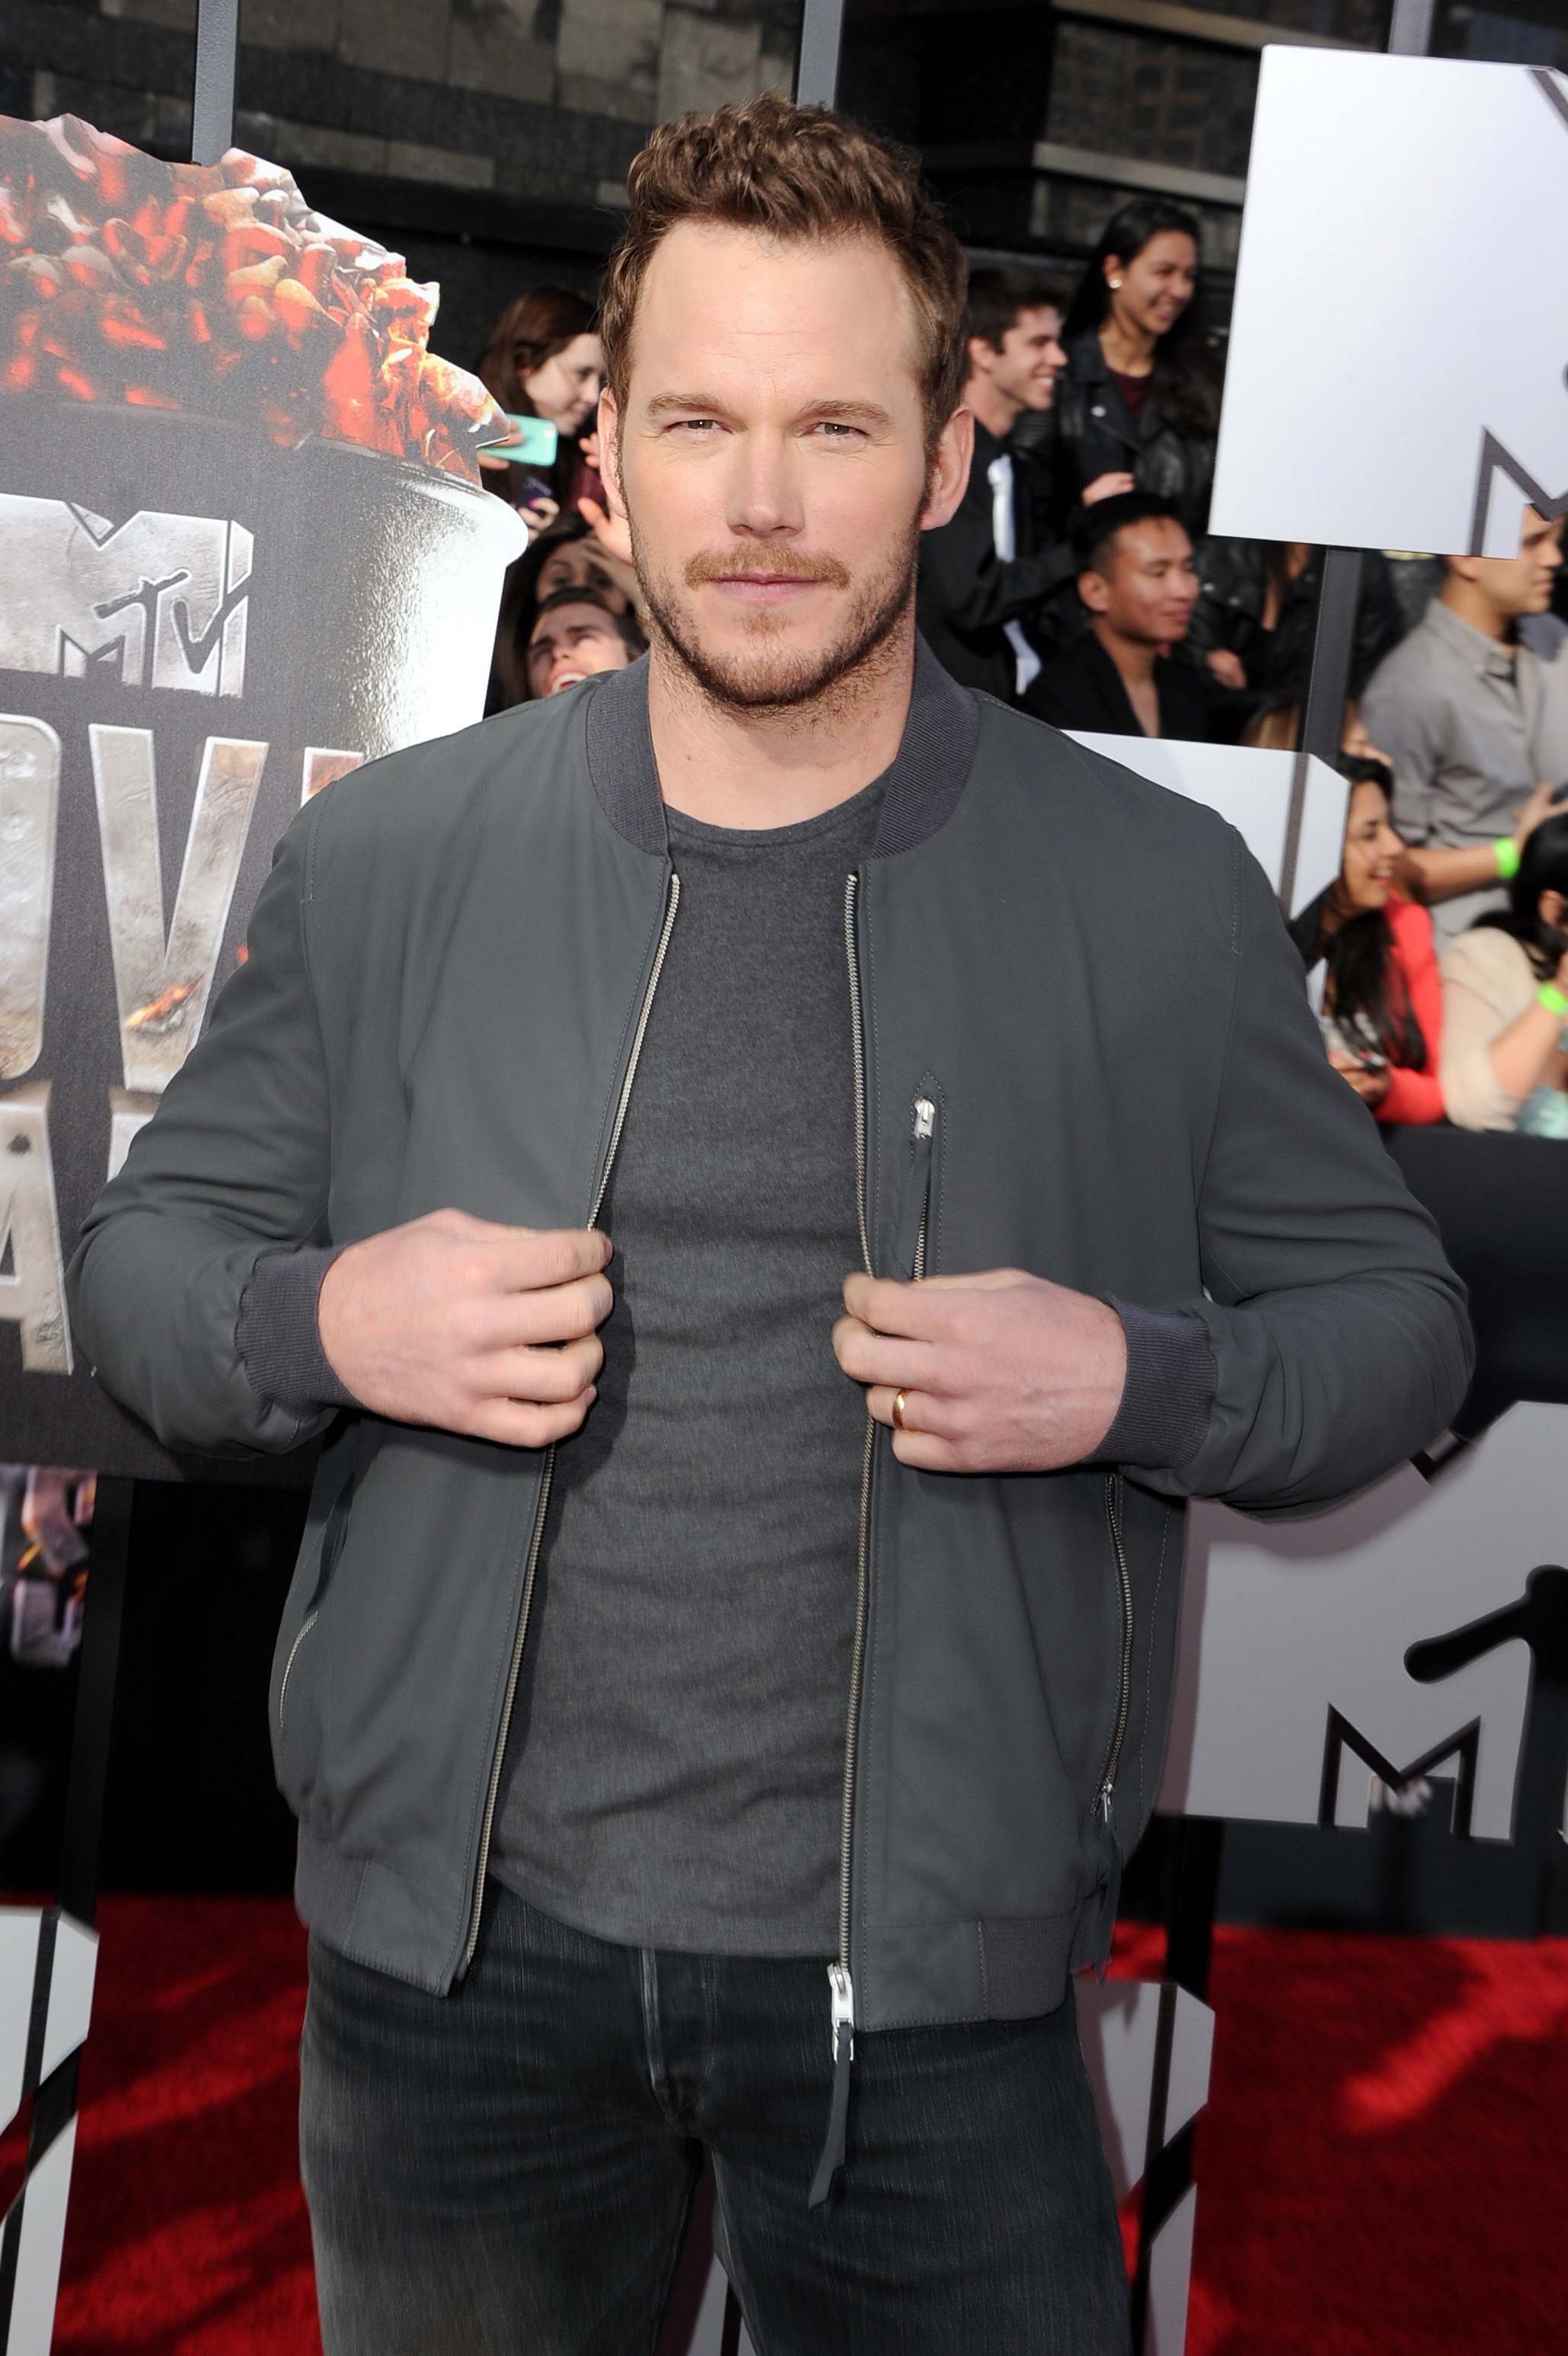 Chris-Pratt-attends-the-2014-MTV-Movie-Awards-at-Nokia-Theatre-L.A.-Live-on-April-13-2014-in-Los-Angeles